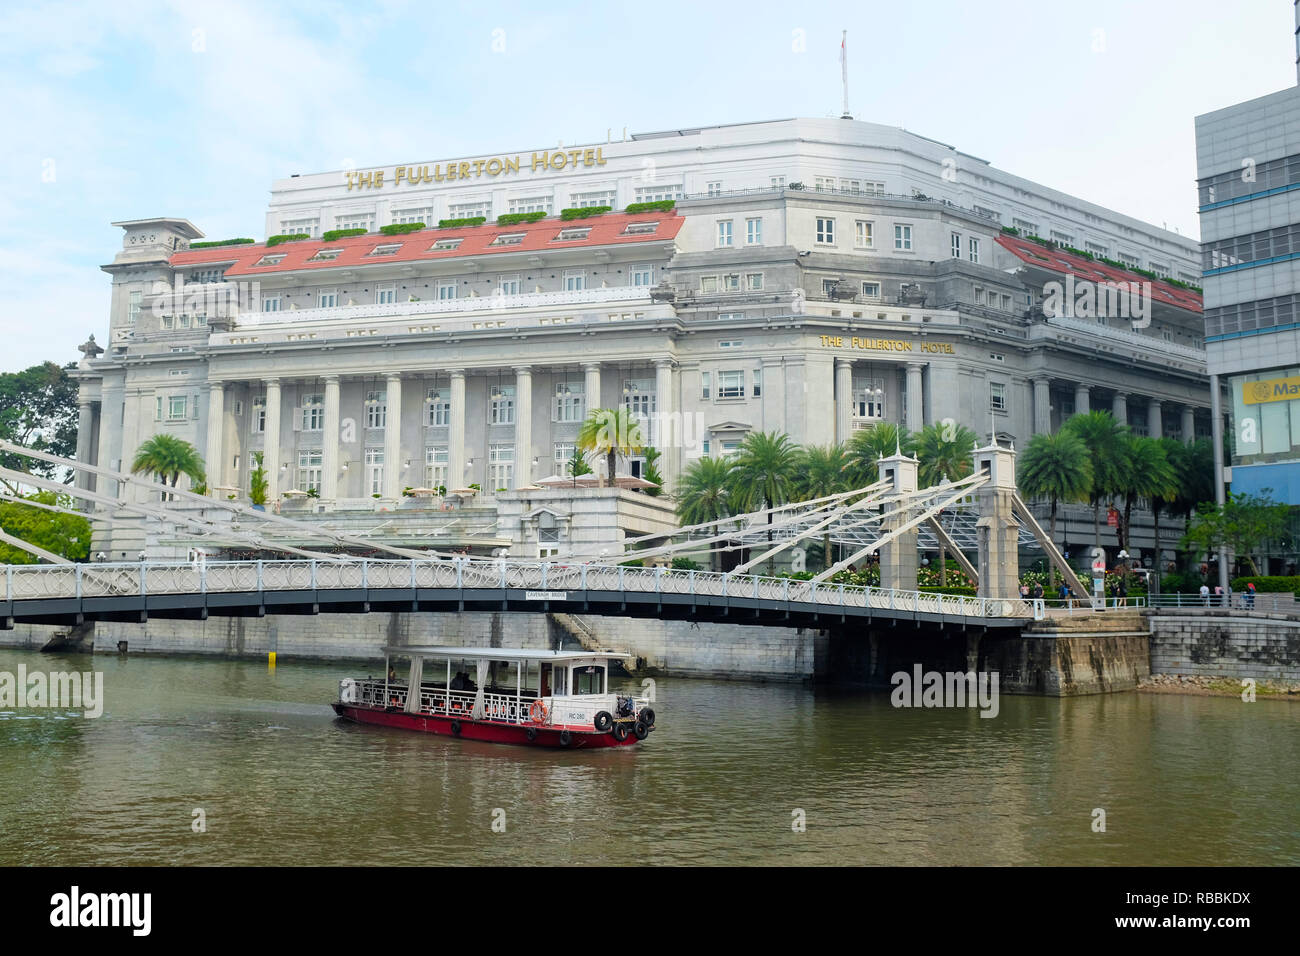 The Fullerton Hotel, Singapore, Asia. - Stock Image